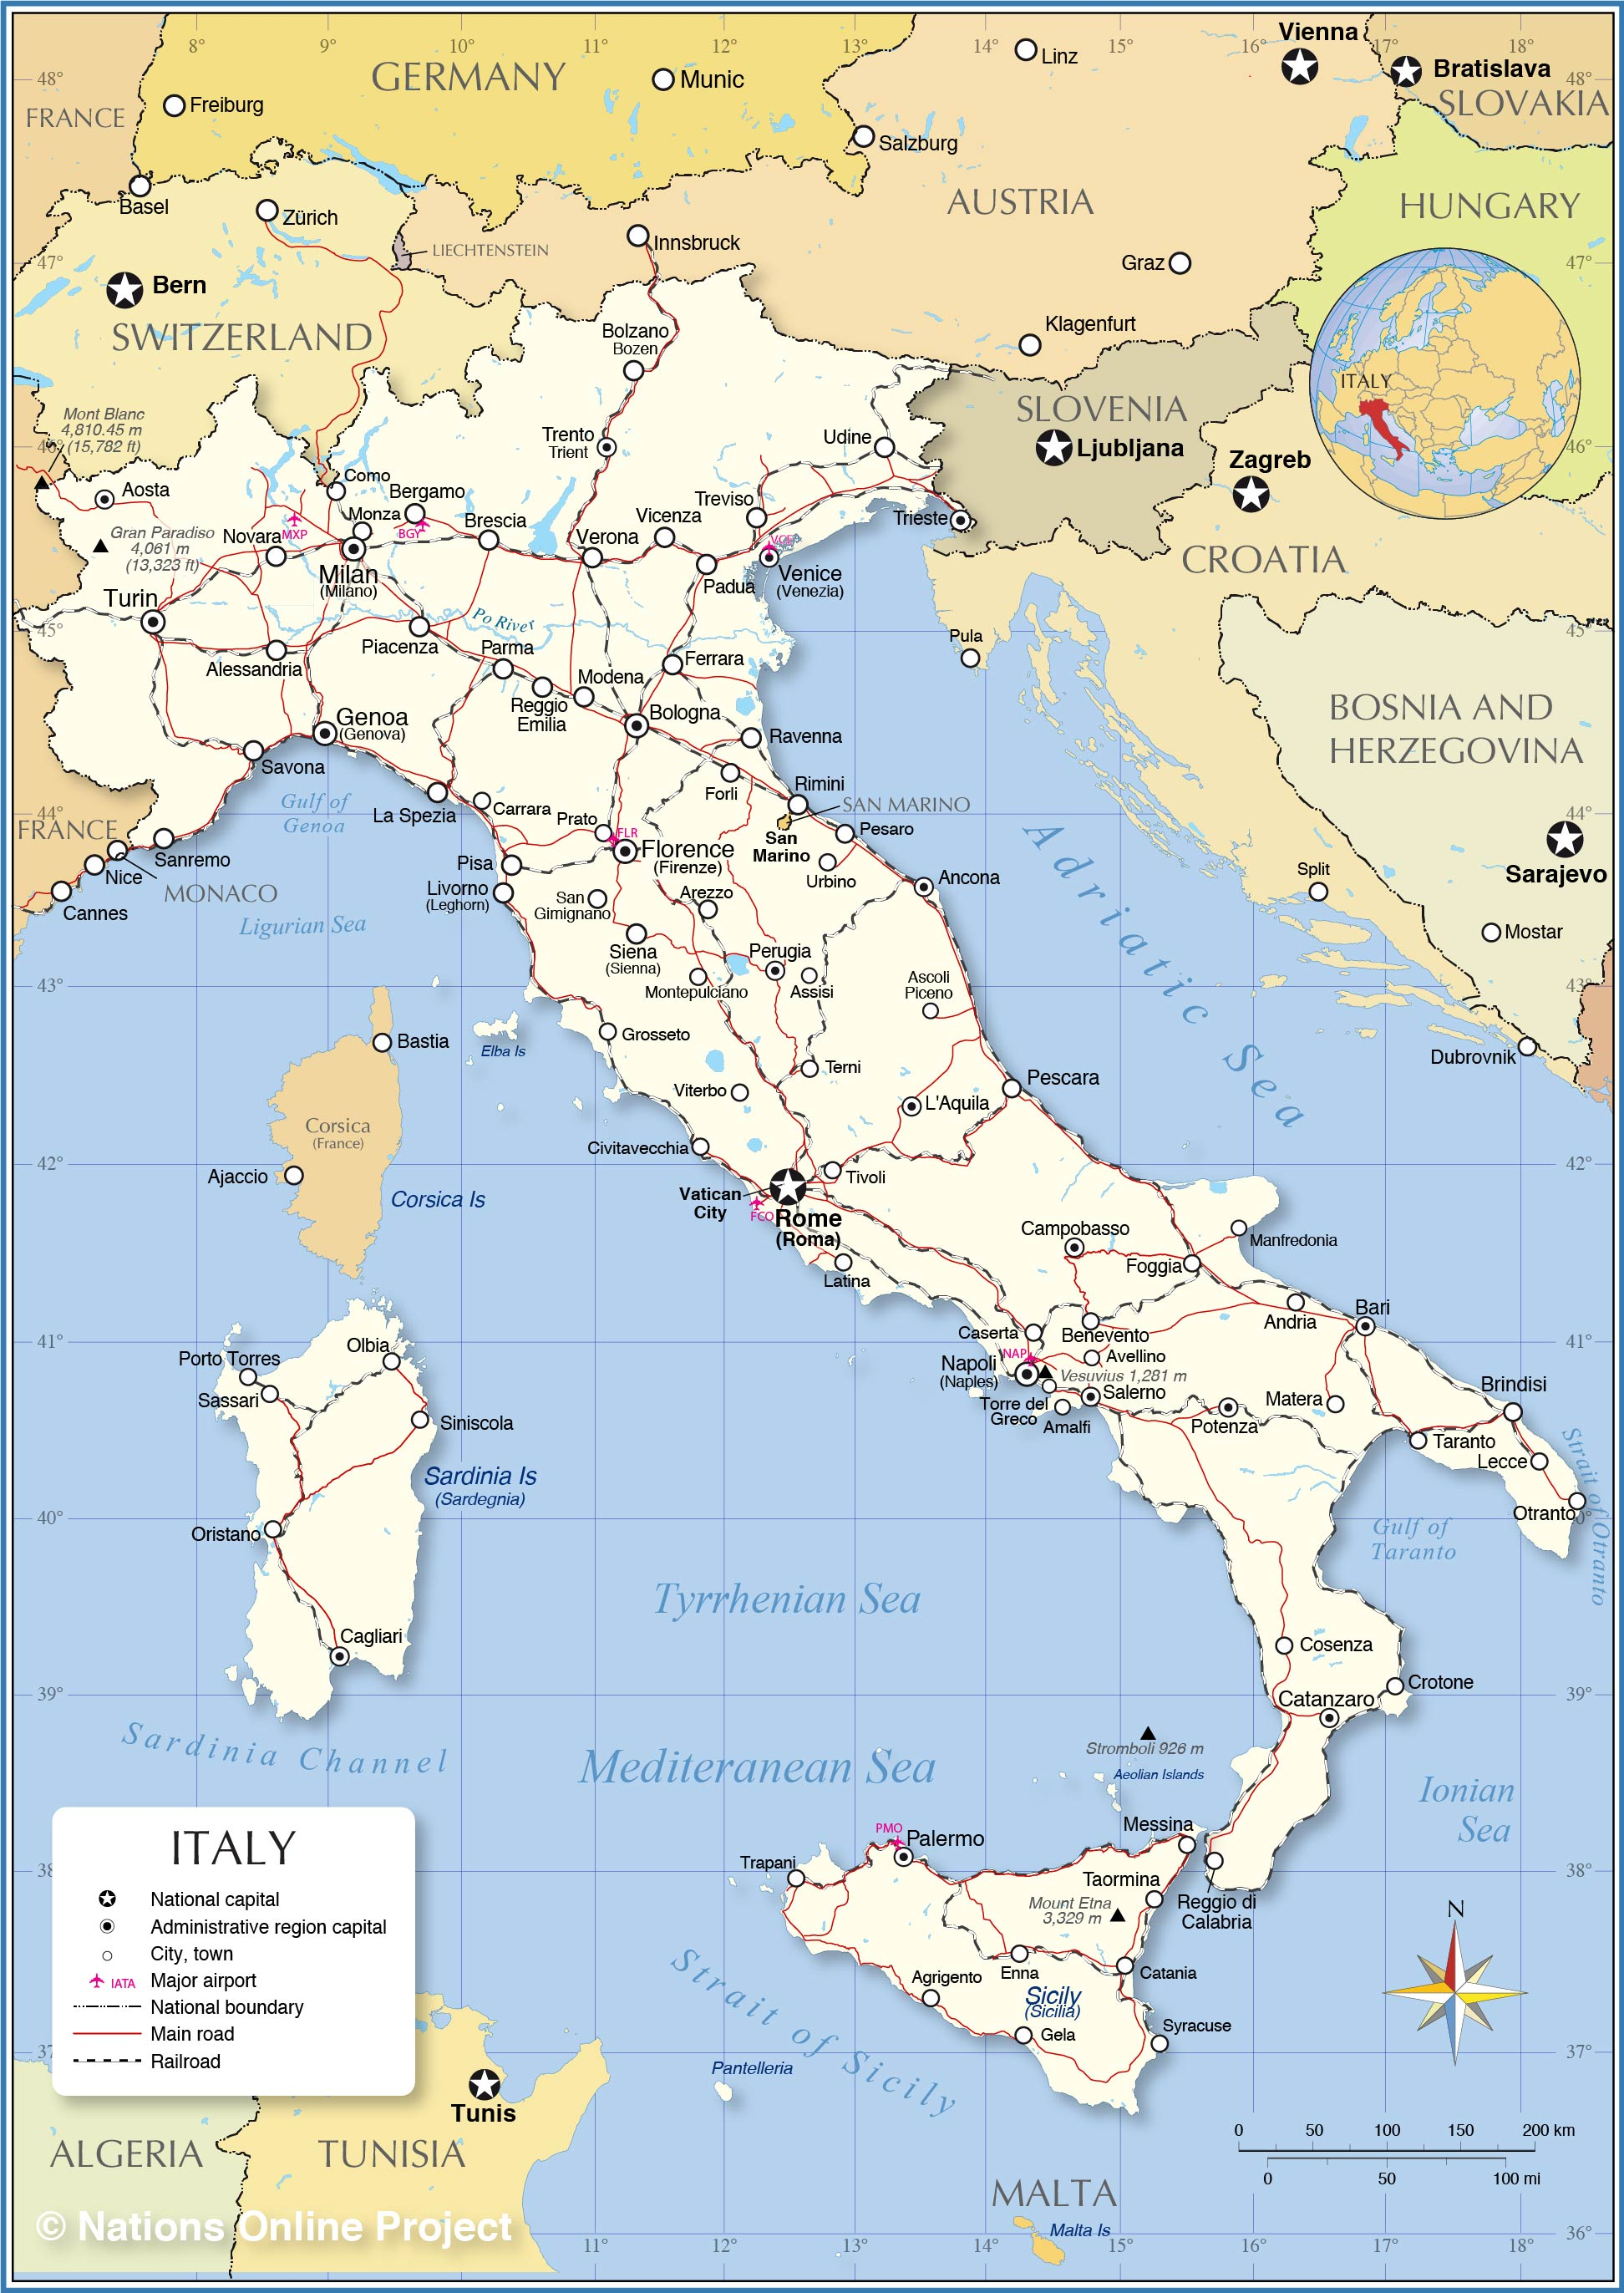 political map of italy  nations online project - detailed map of italy